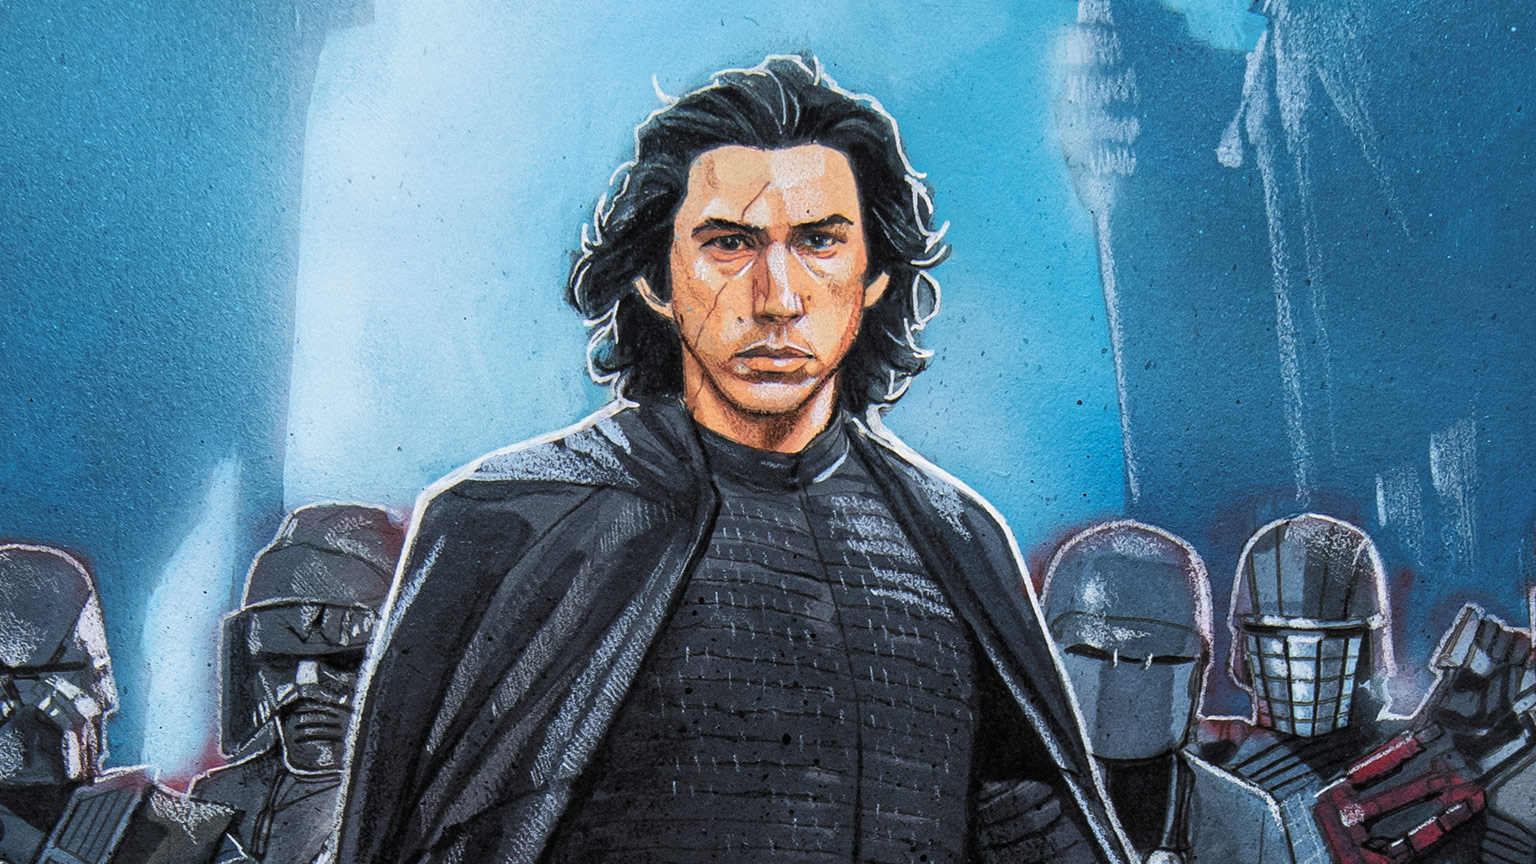 Kylo Ren on the cover of Marvel's Star Wars: The Rise of Skywalker #1